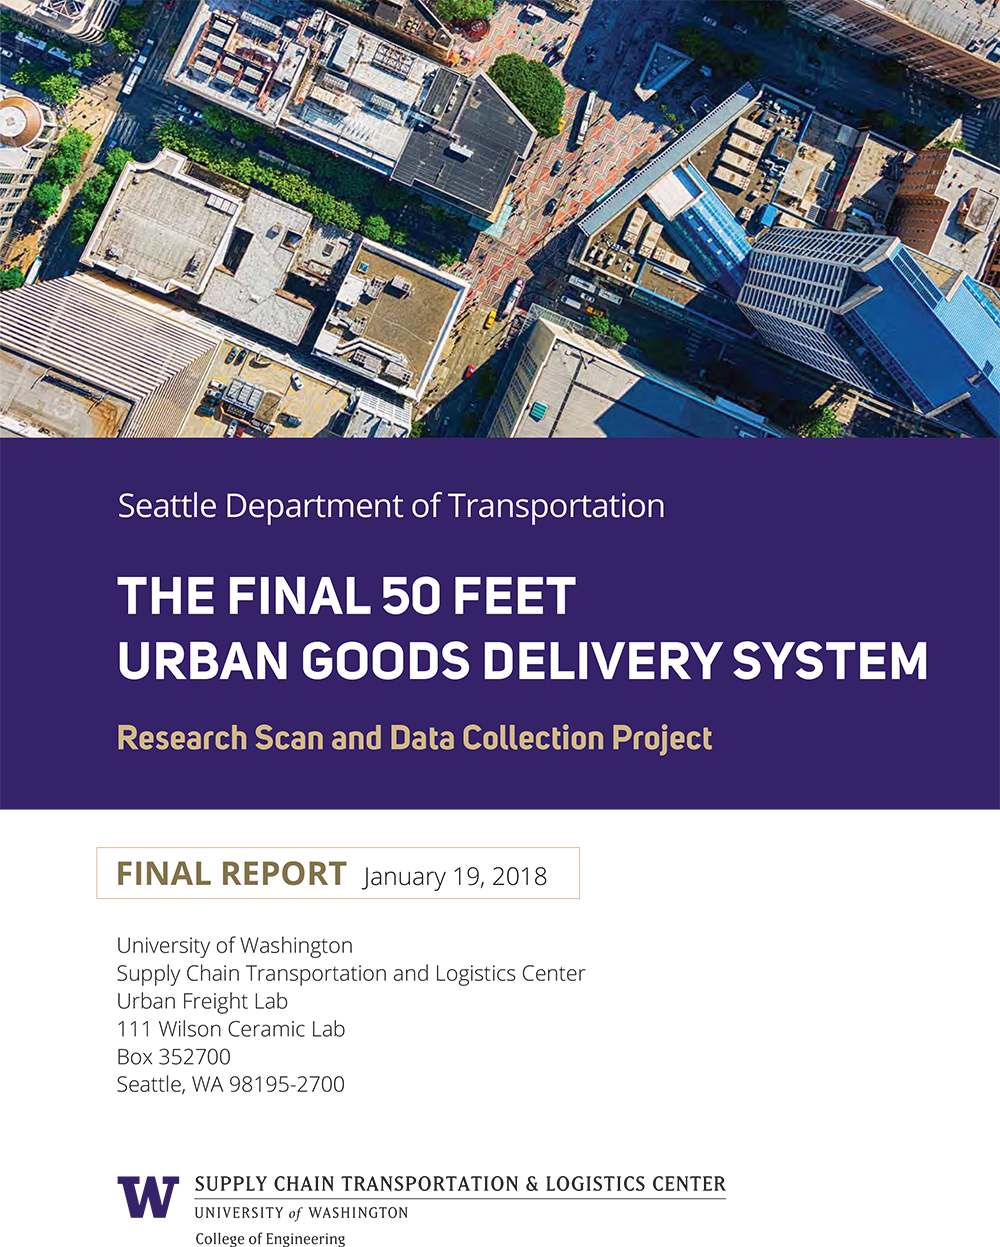 The Final 50 Feet: Urban Goods Delivery System